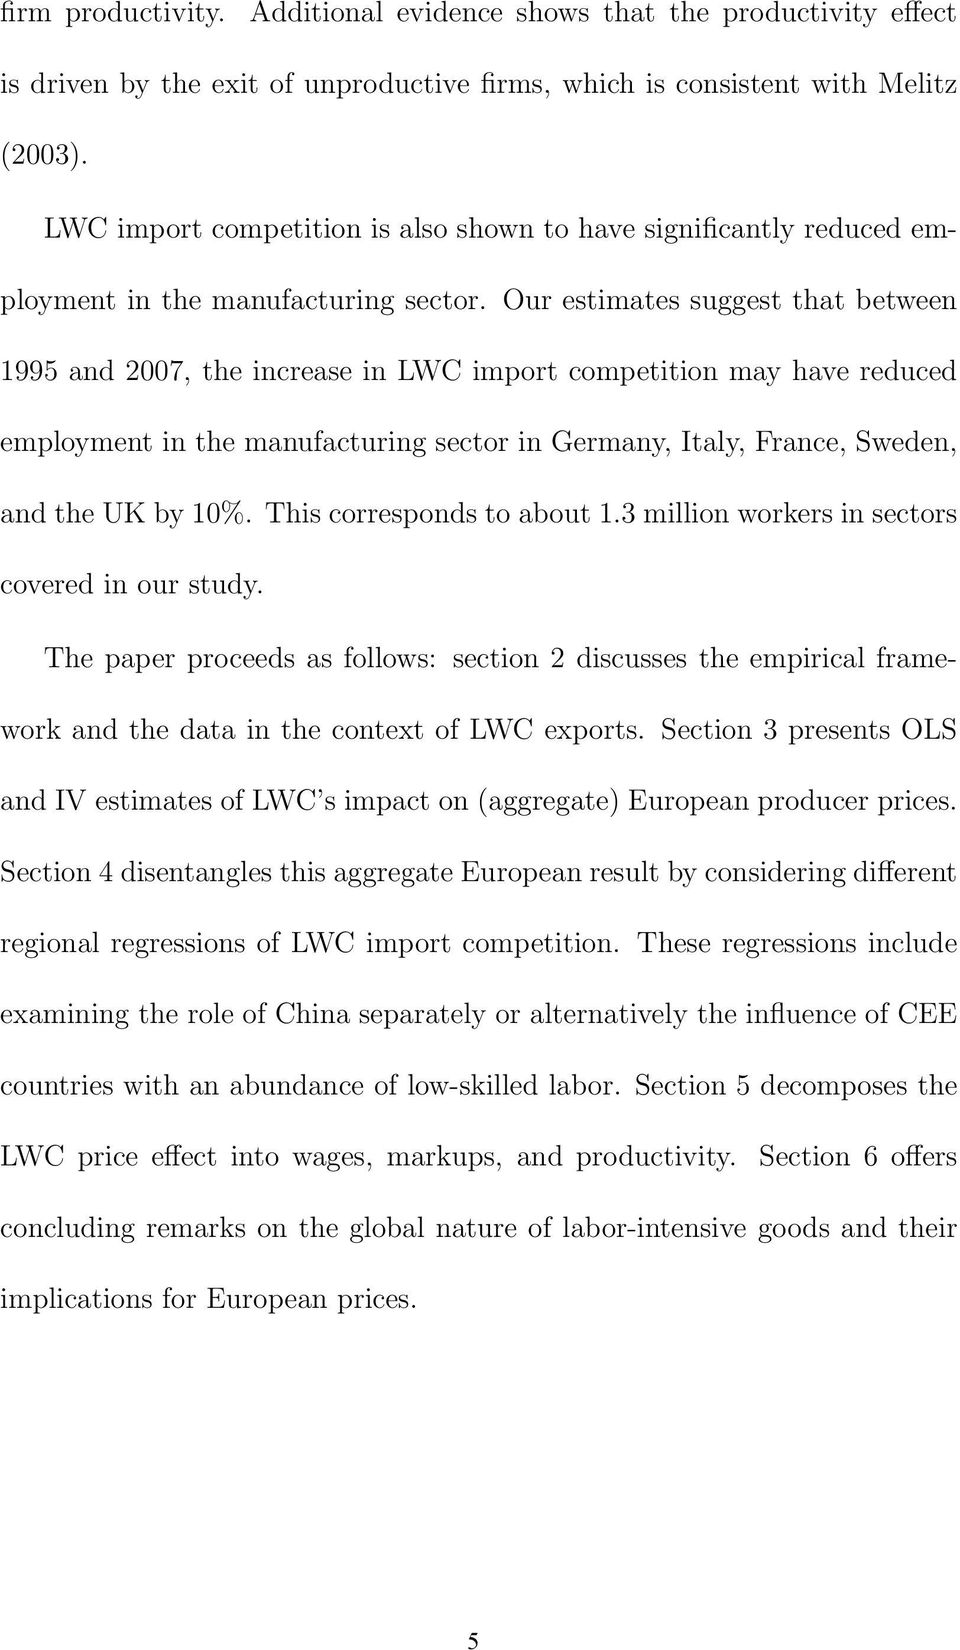 Our estimates suggest that between 1995 and 2007, the increase in LWC import competition may have reduced employment in the manufacturing sector in Germany, Italy, France, Sweden, and the UK by 10%.